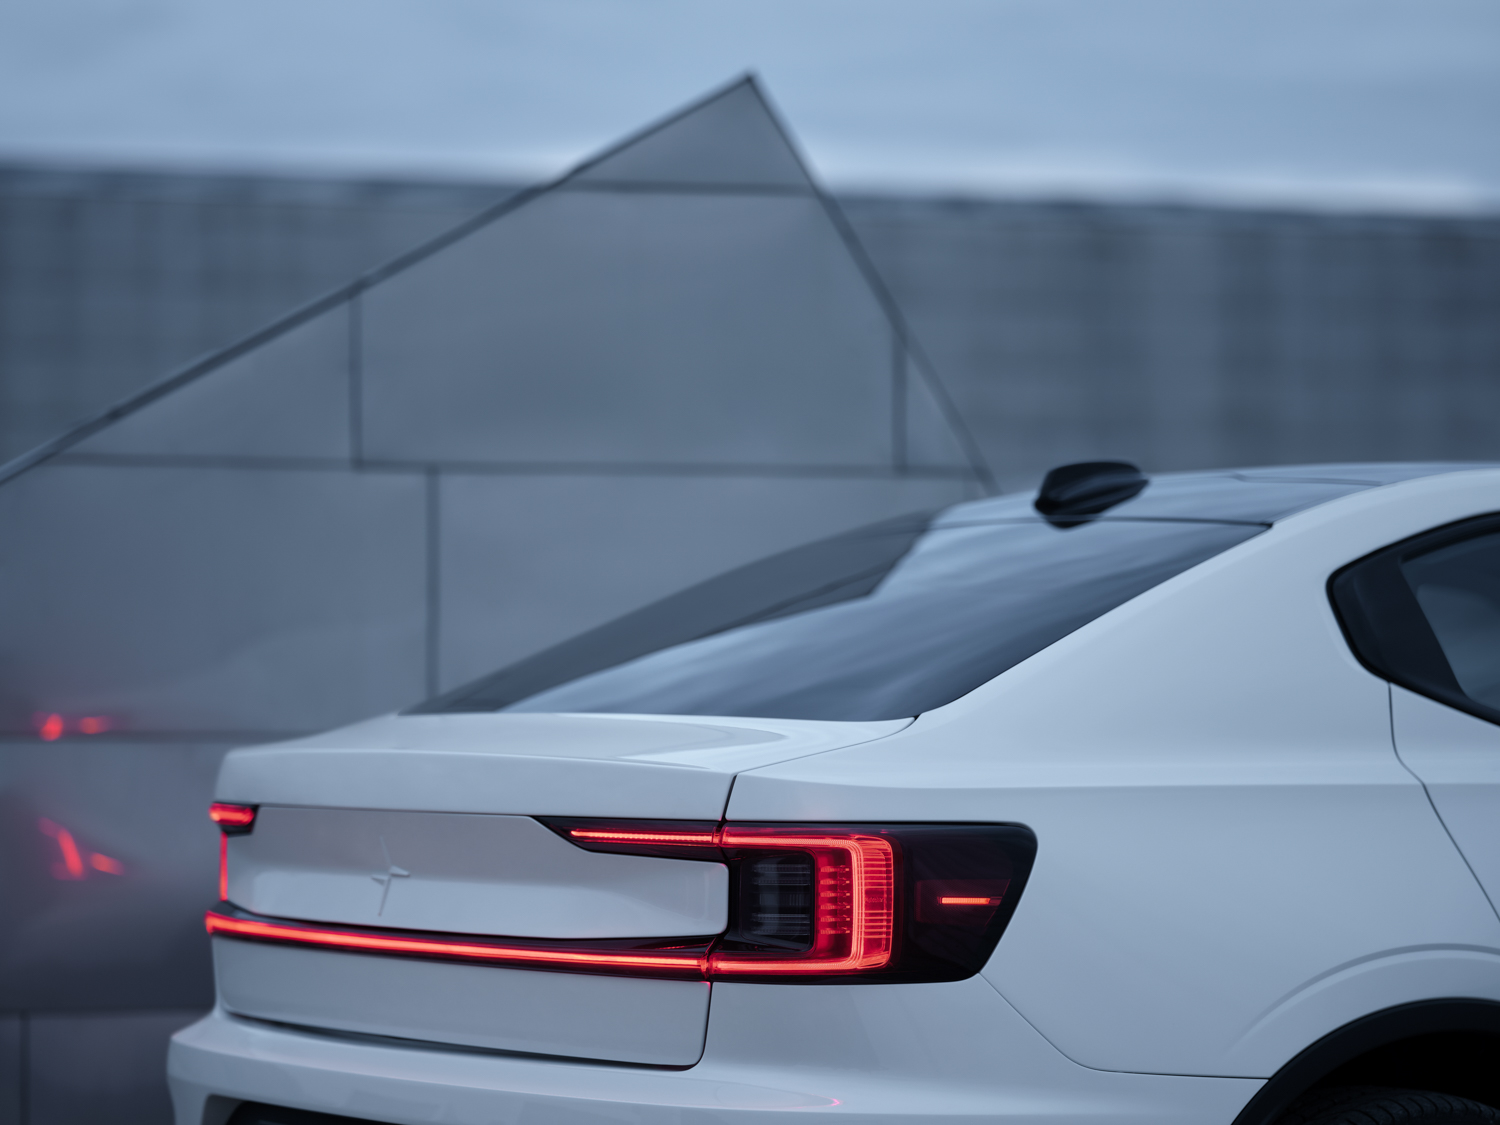 Polestar 2 rear end detail